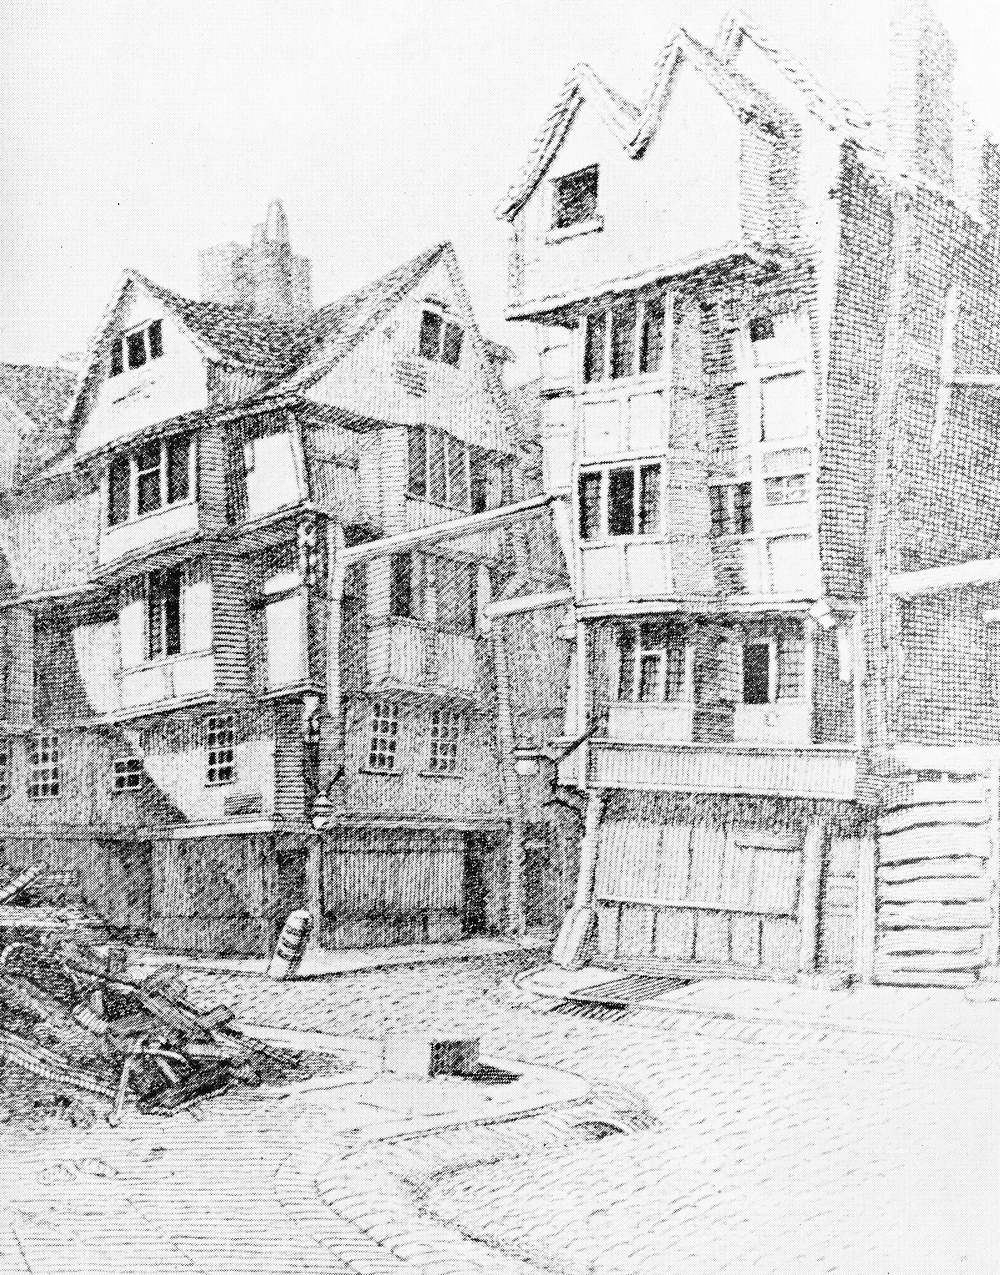 These houses in Butcher Row in 1798 look as if they might fall down at any moment. In fact one seems to have done just that at bottom left.